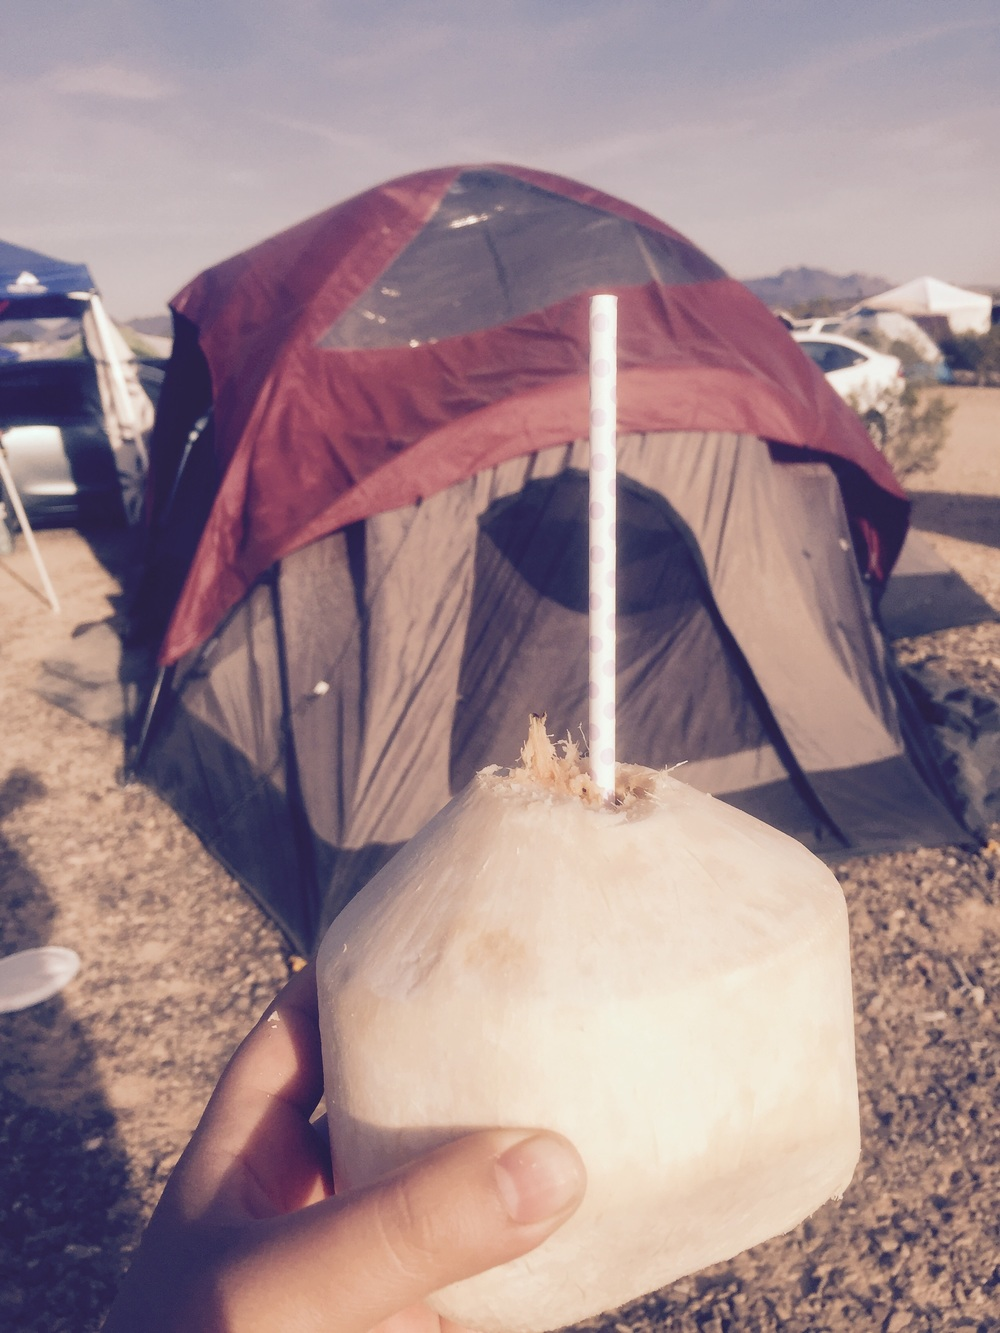 Fresh coconut water at the campsite.